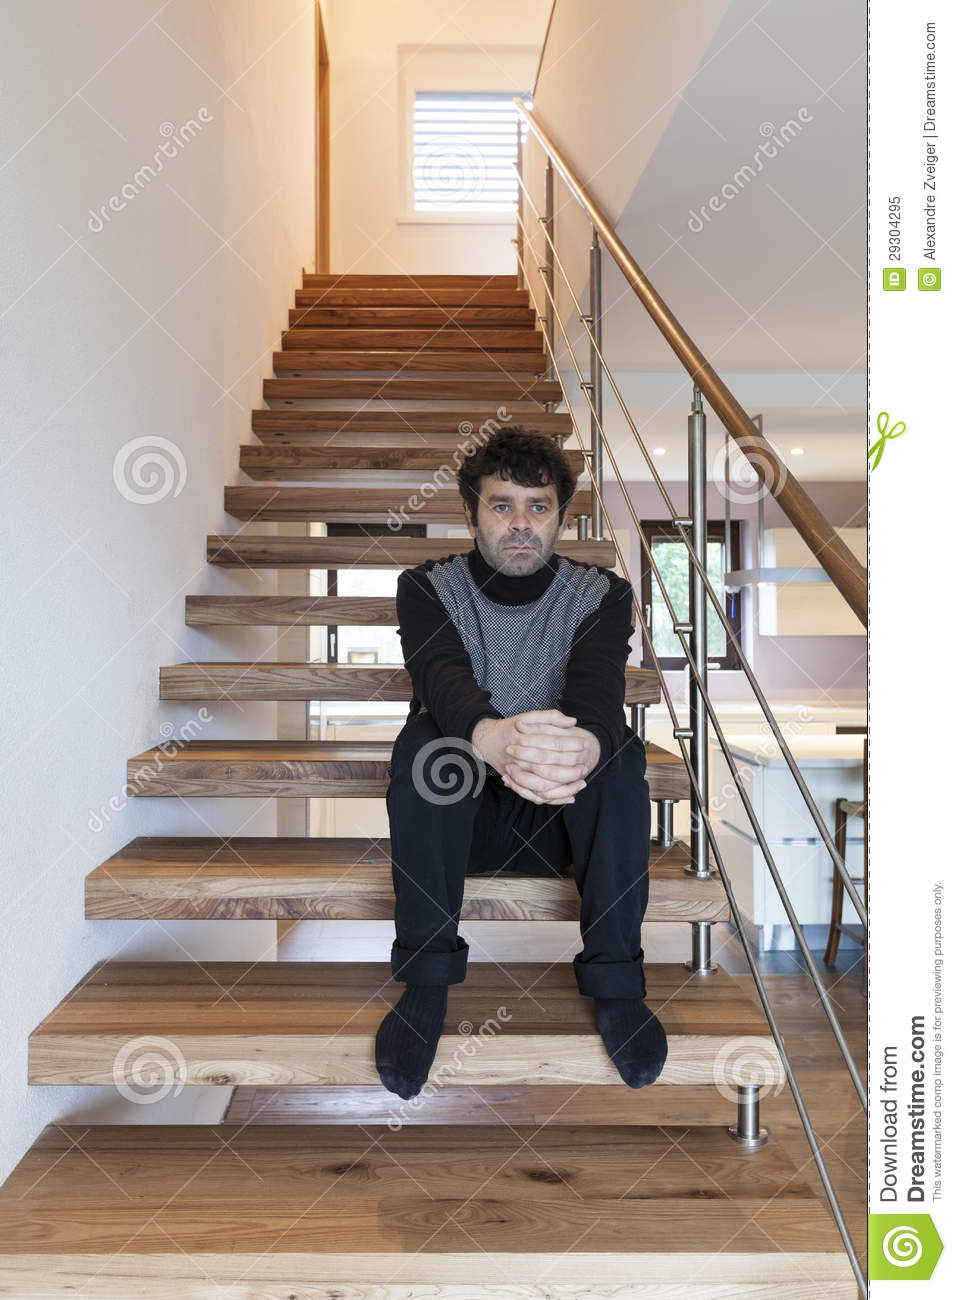 Man Sitting On The Stairs Royalty Free Stock Photo Image